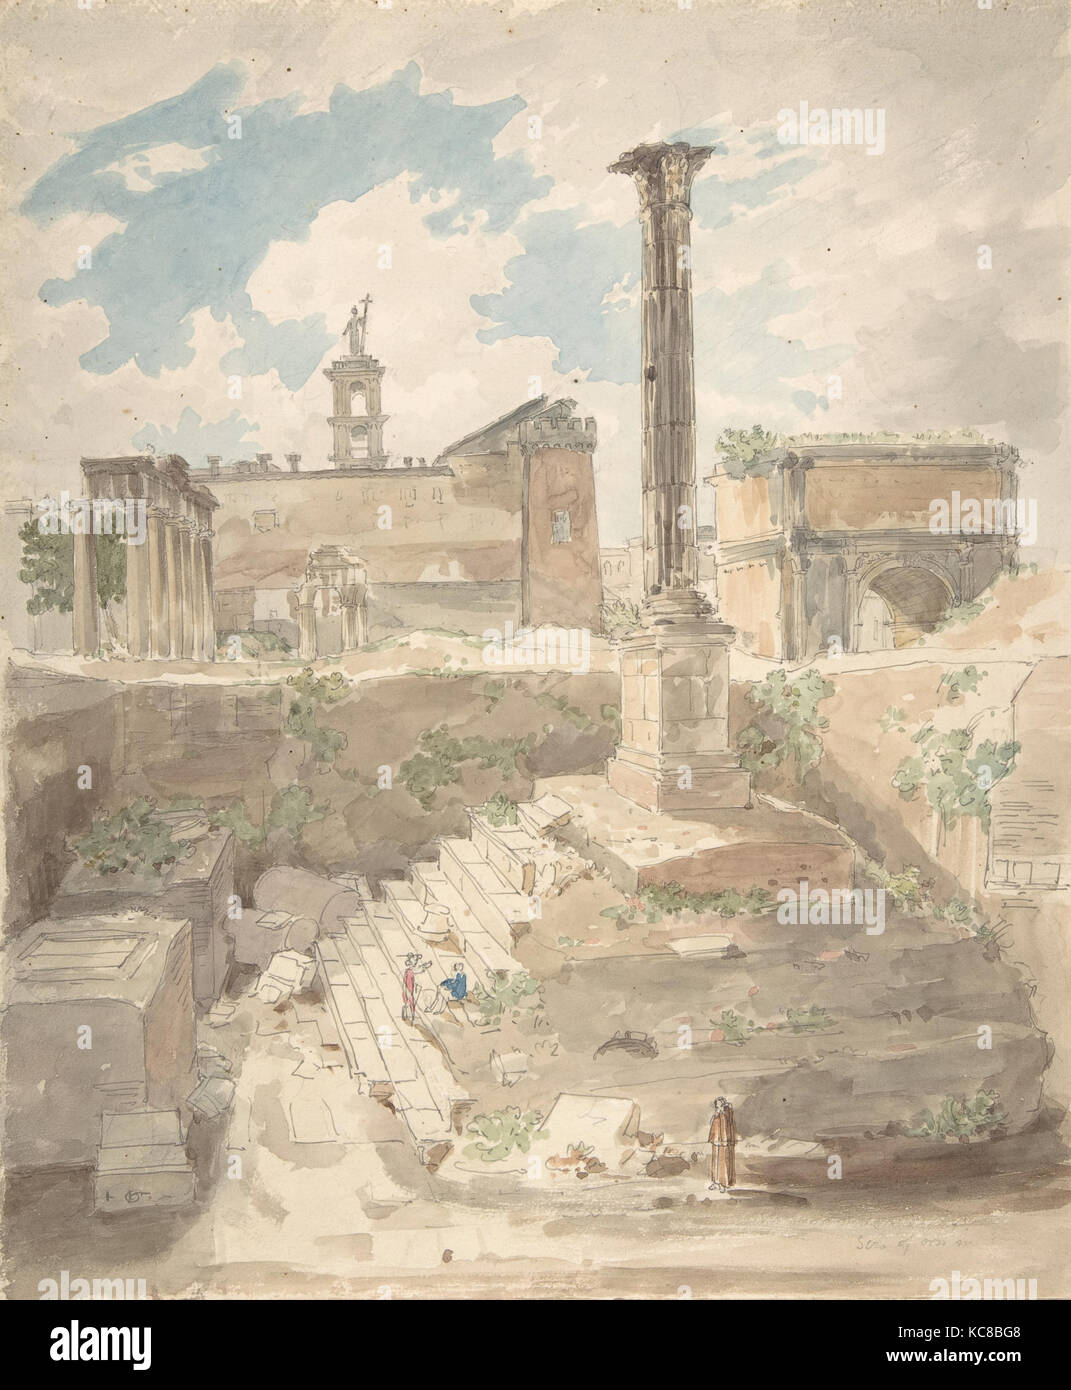 View of the Roman Forum, unexcavated, Attributed to Sir Charles Barry, 1840 - Stock Image